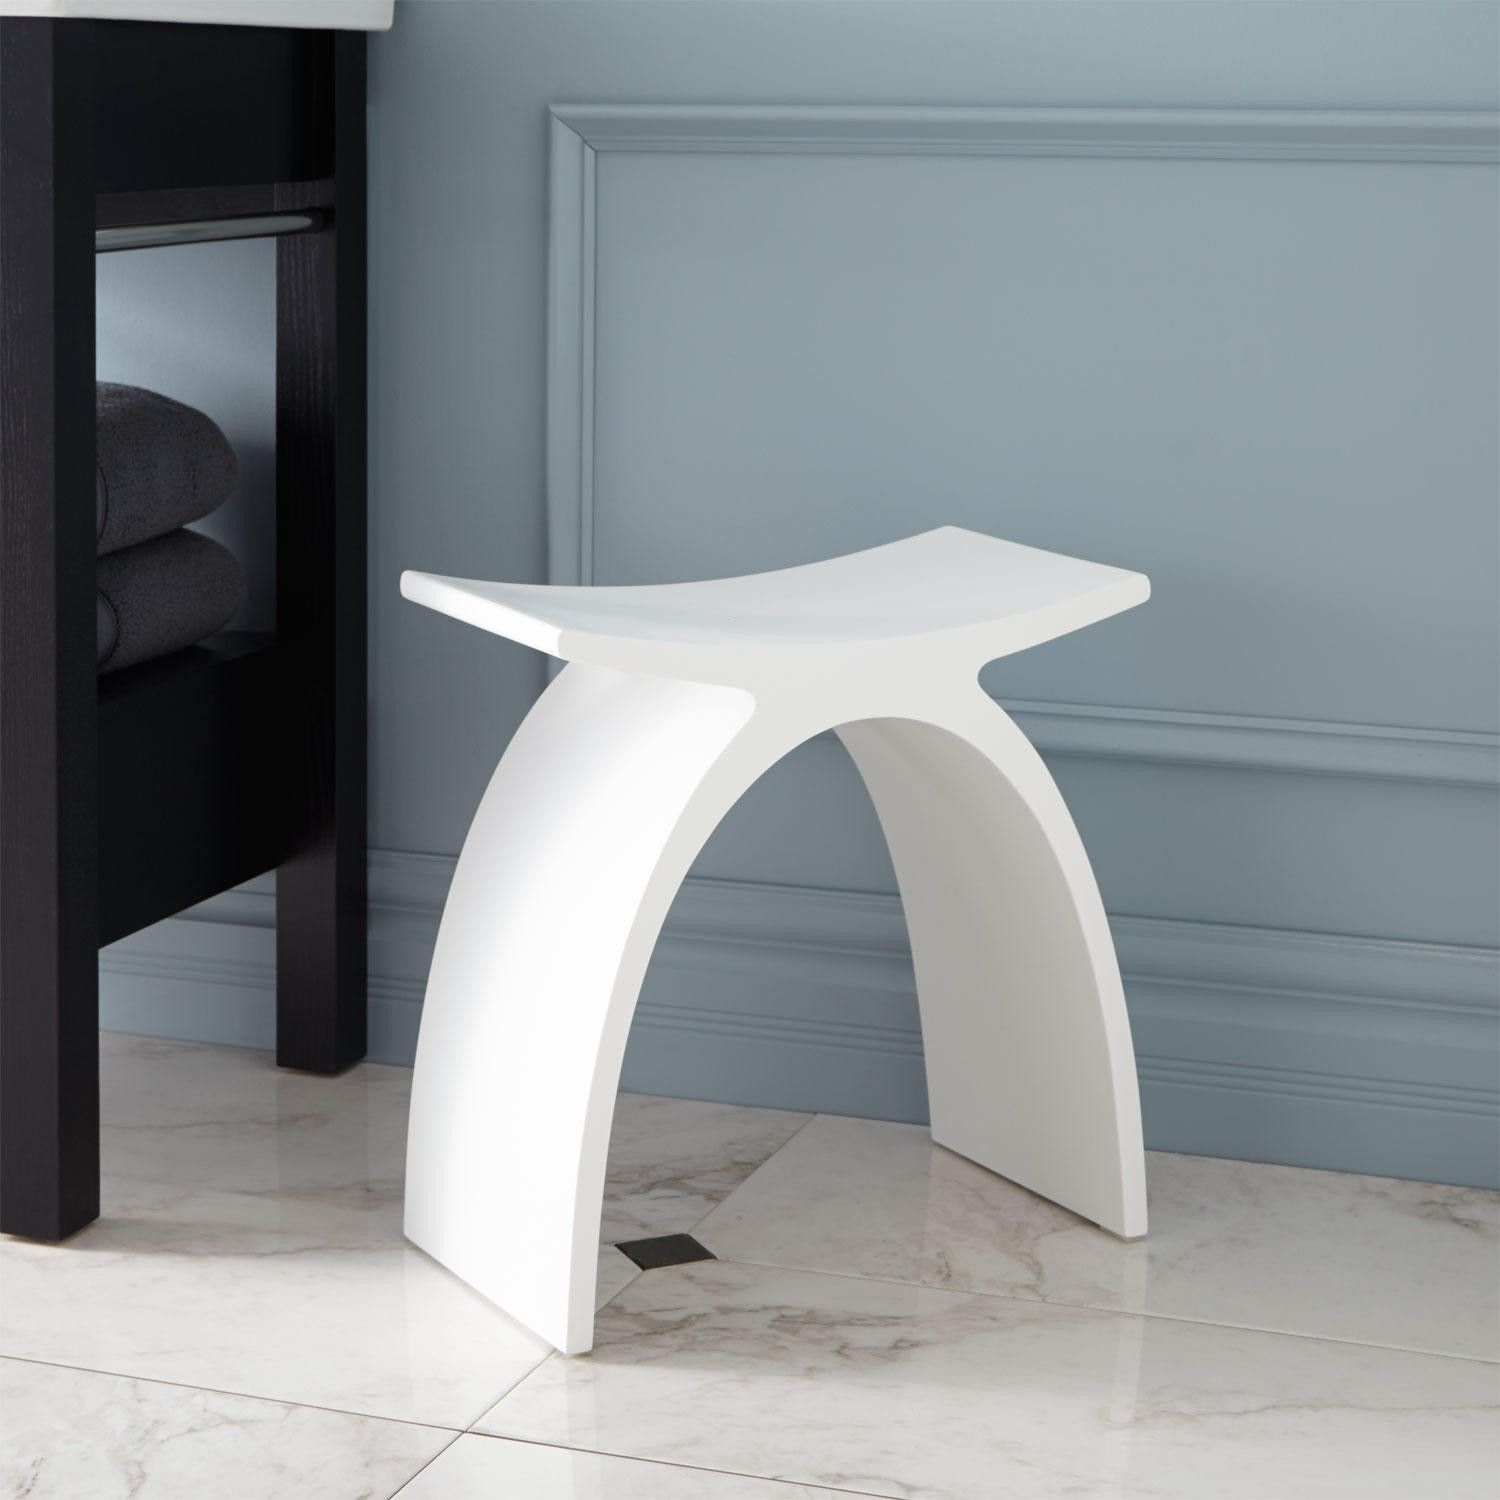 Cygni Resbath Stool White Matte Fish Stools Bath and